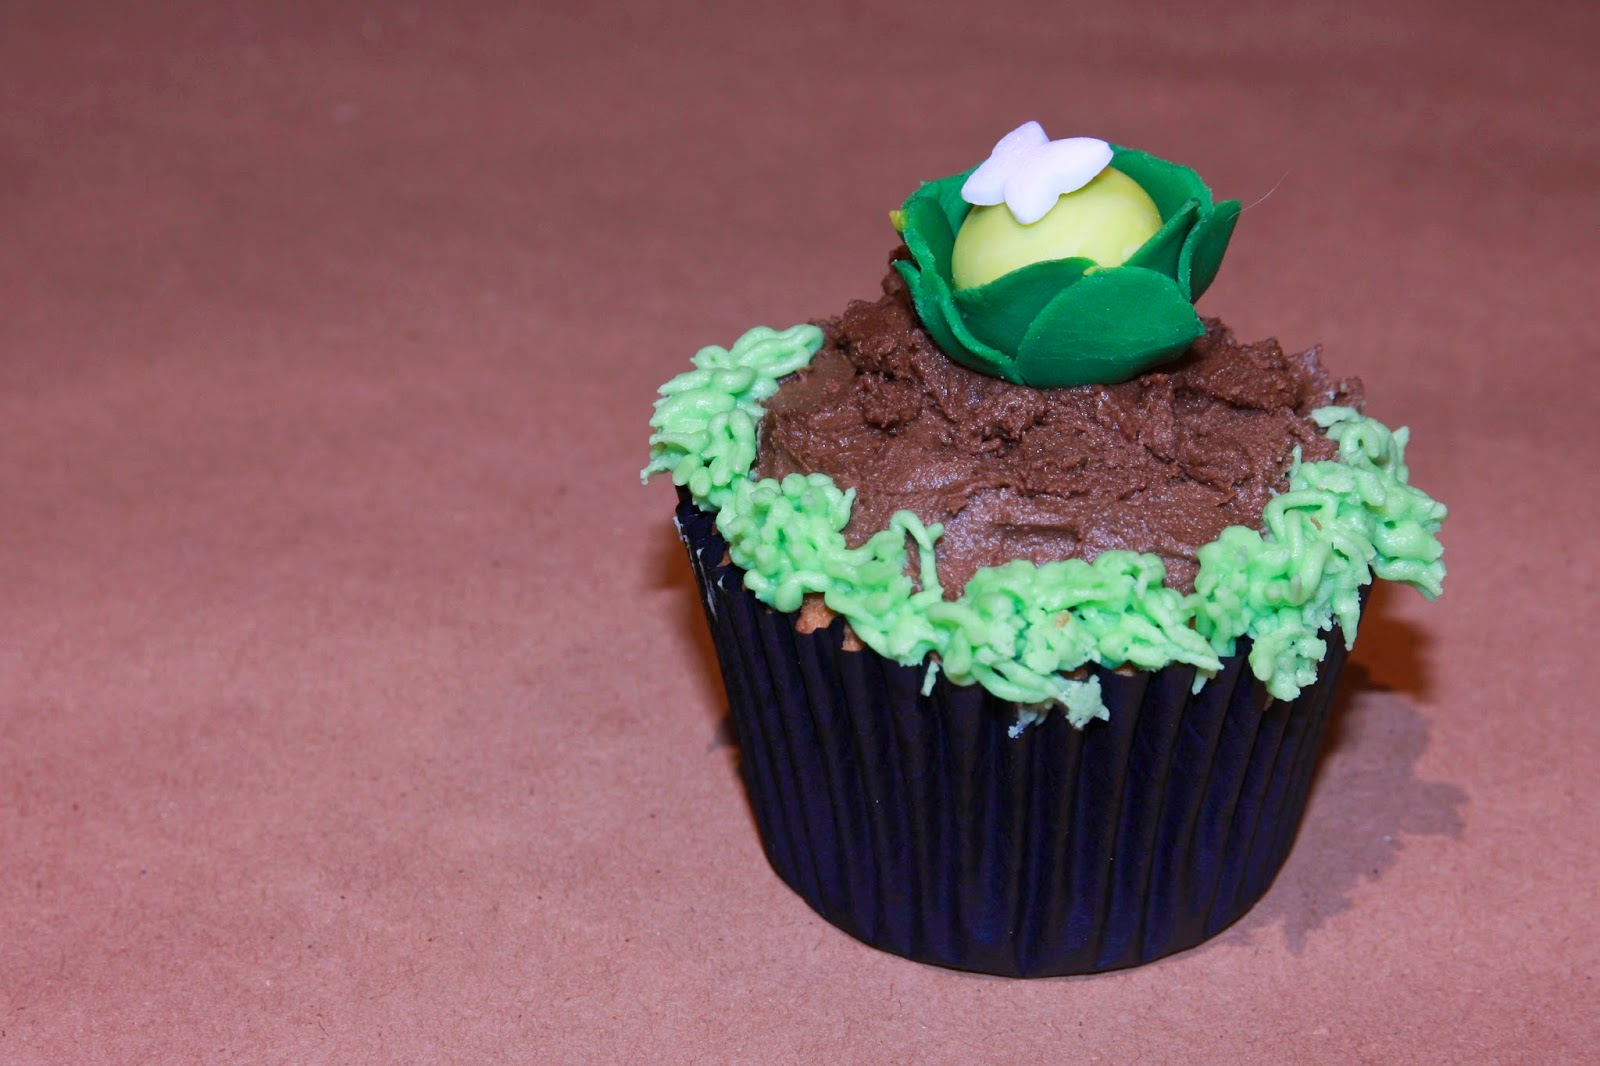 Earl Grey cupcake decorated with a caulliflower growing in a vegetable patch